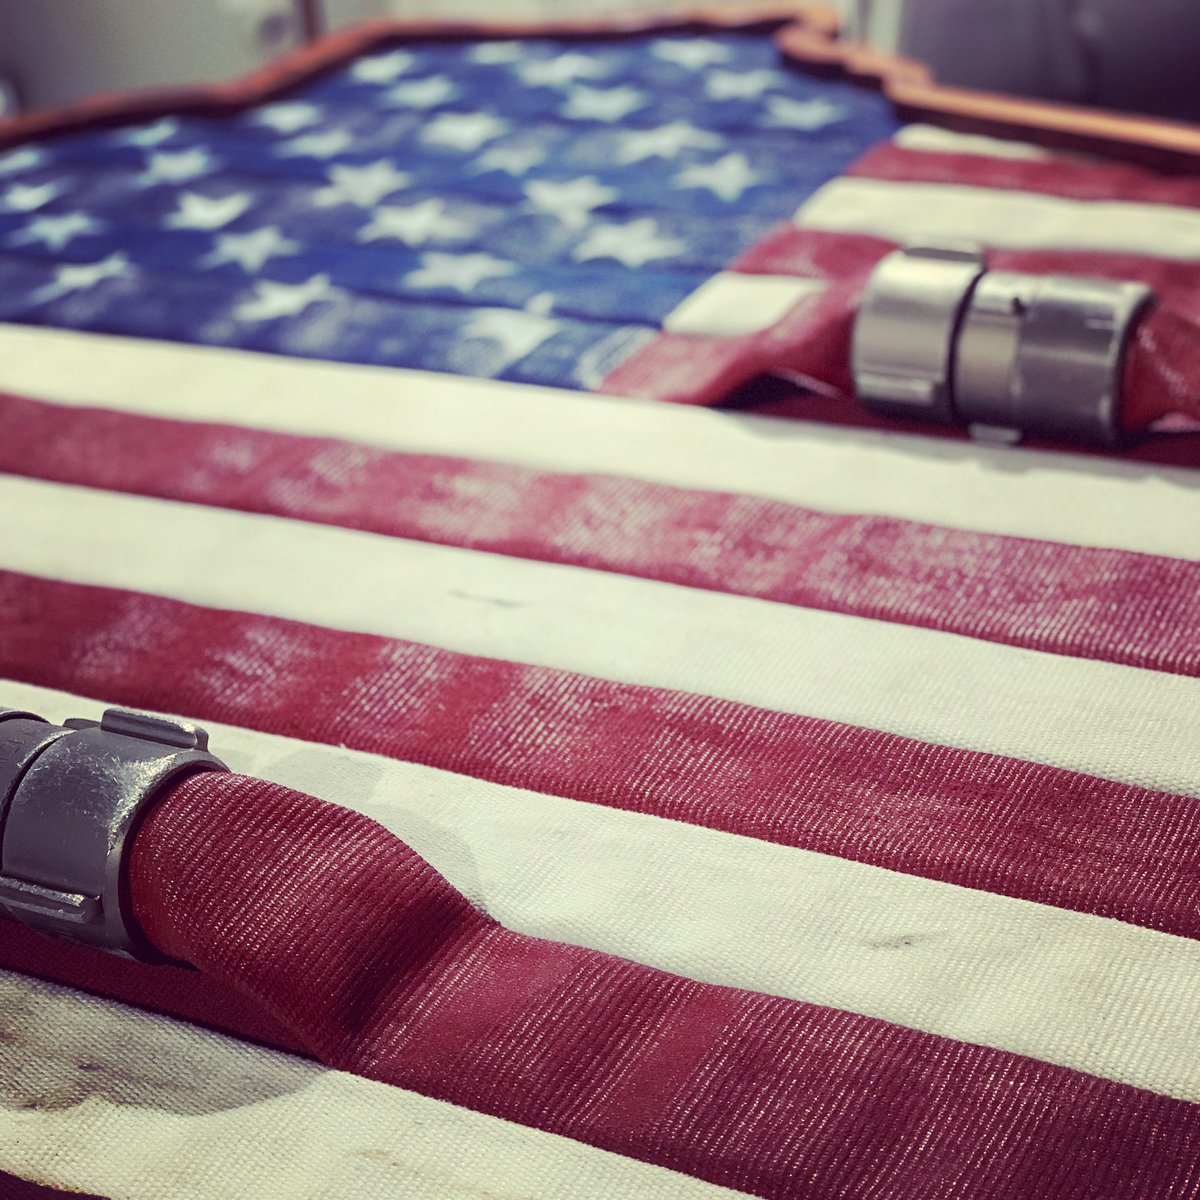 My favorite item in my store is the USA and Wisconsin shaped flags made from fire hose. Super unique item you won't find anywhere else!   https://t.co/tCNAqOz5k2  #wisconsin #gifts #christmas #firefighter #mondaythoughts #fortune500 #mancave #ad #AmazonSmile #amazon #firehoseflag https://t.co/g455RPI4bw